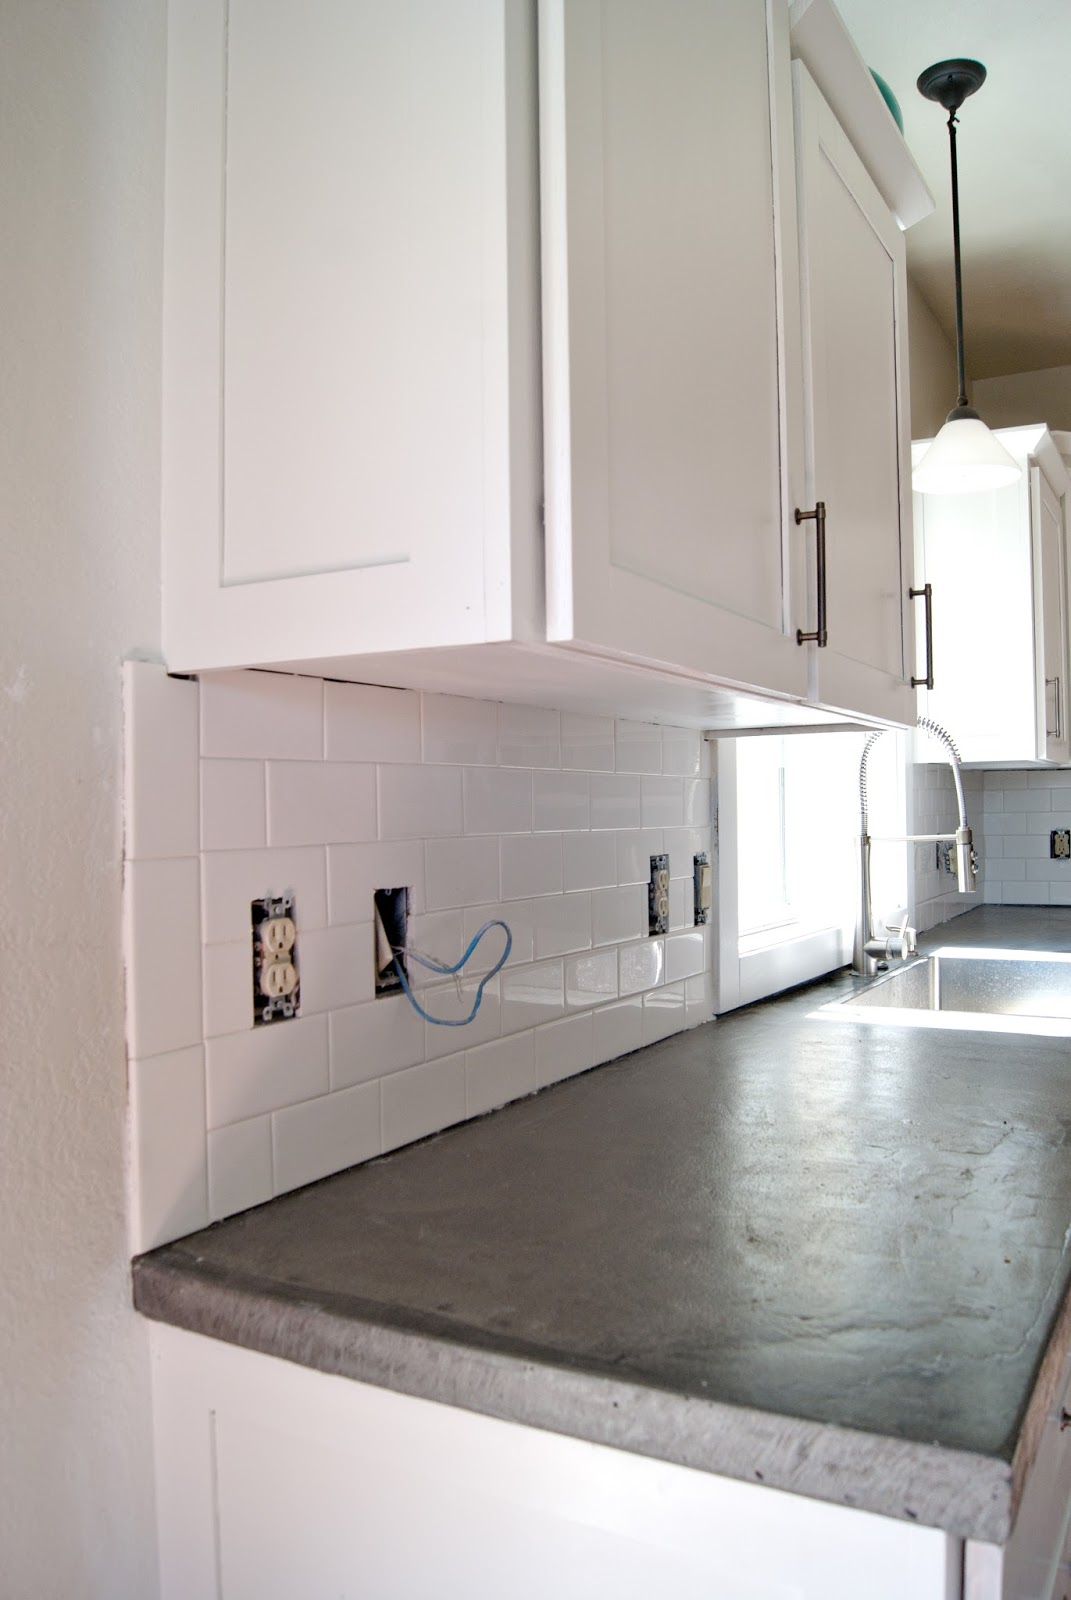 Subway tile installation tips on grouting with fusion pro next dailygadgetfo Gallery